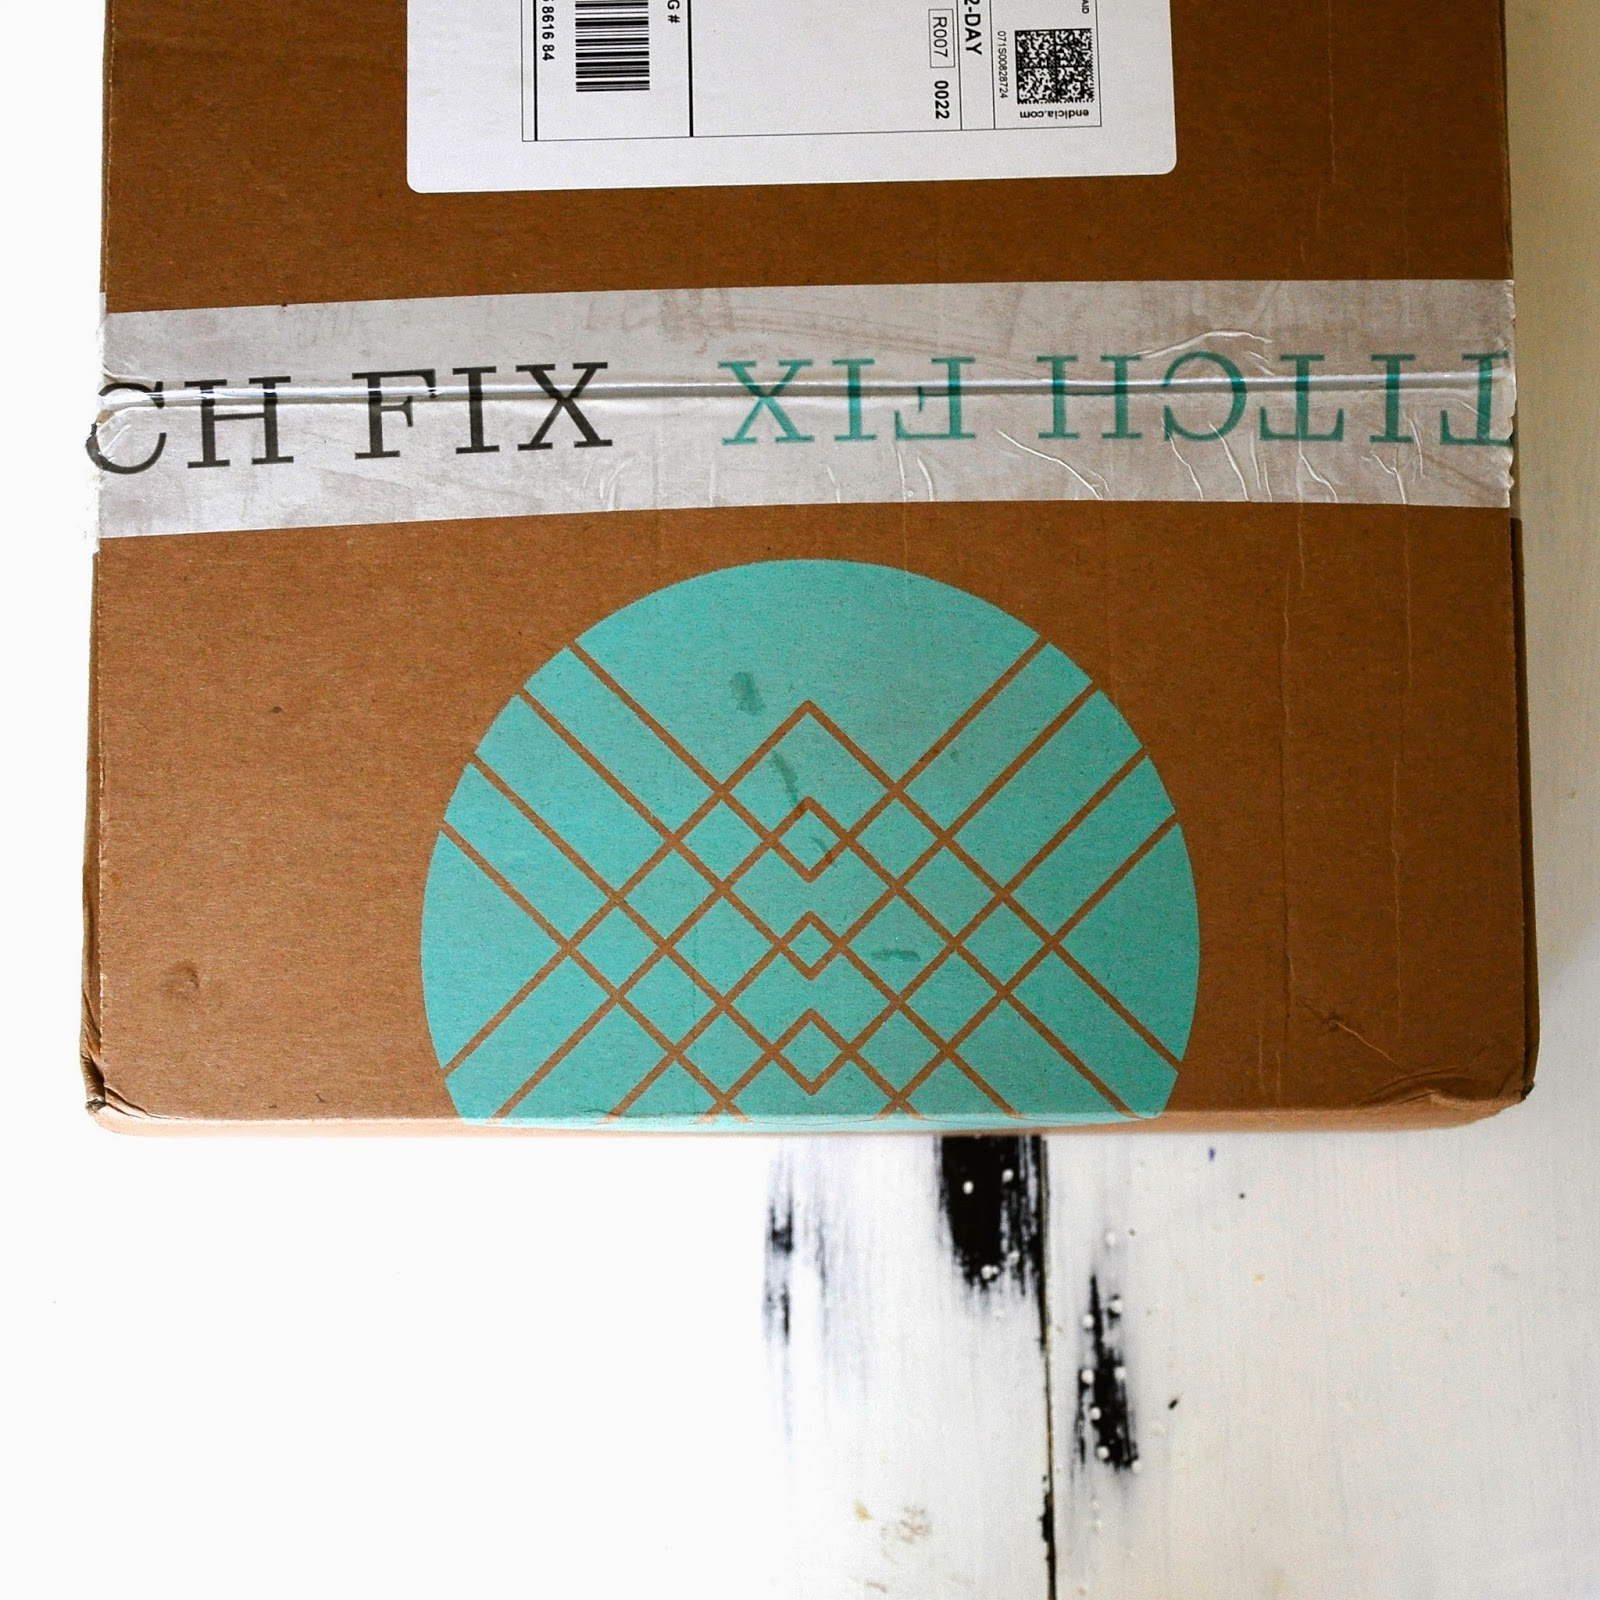 https://www.stitchfix.com/referral/3384702